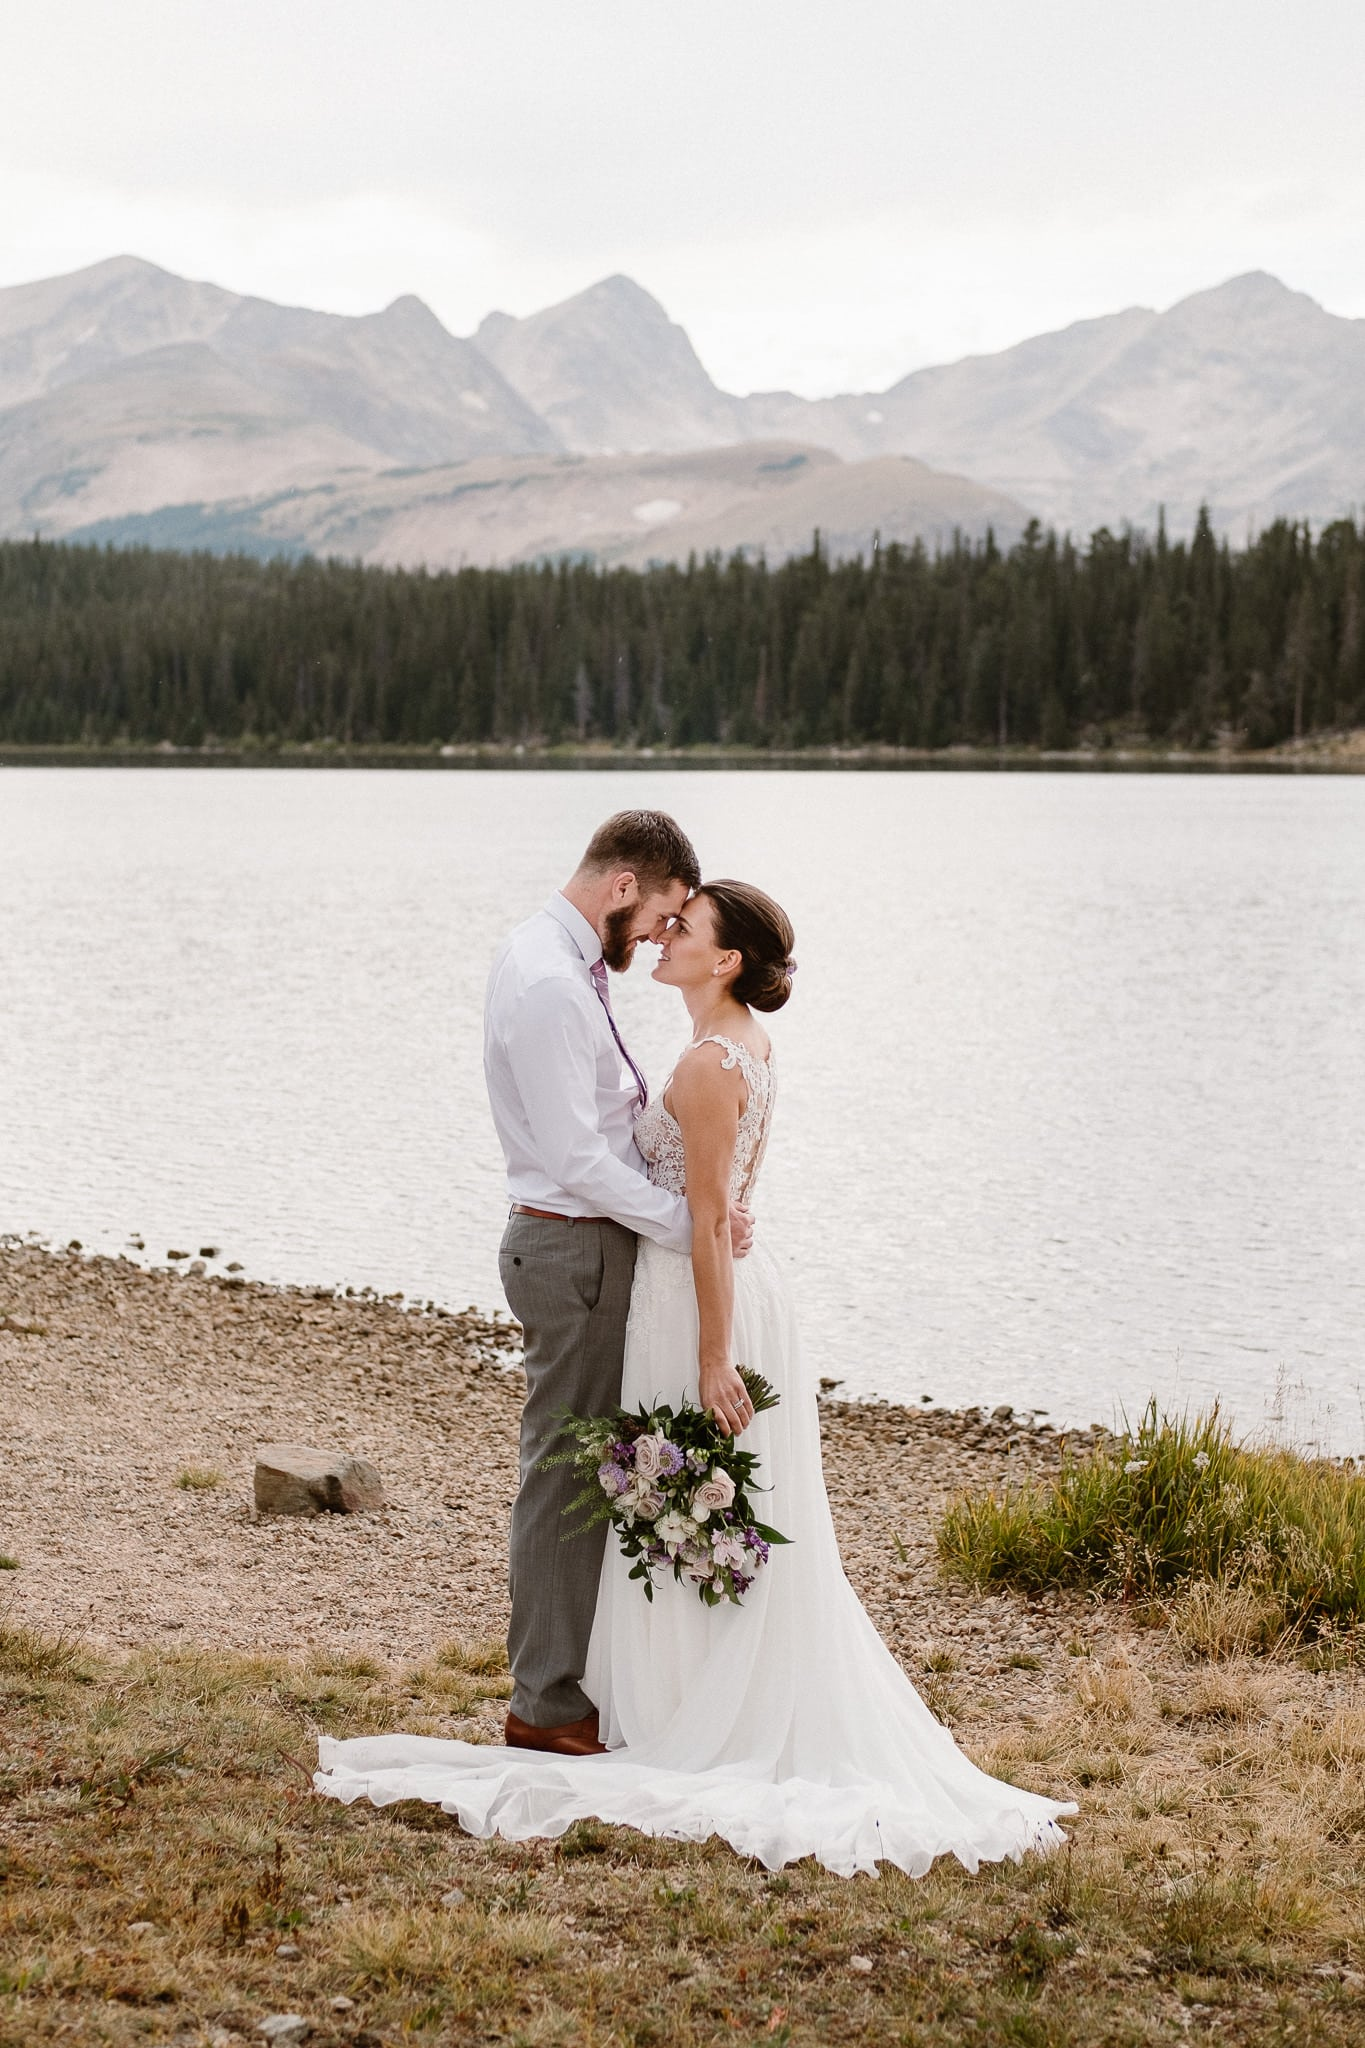 Colorado mountain elopement photographer, alpine lake adventure wedding, Boulder wedding photographer, bride and groom portraits in mountains,